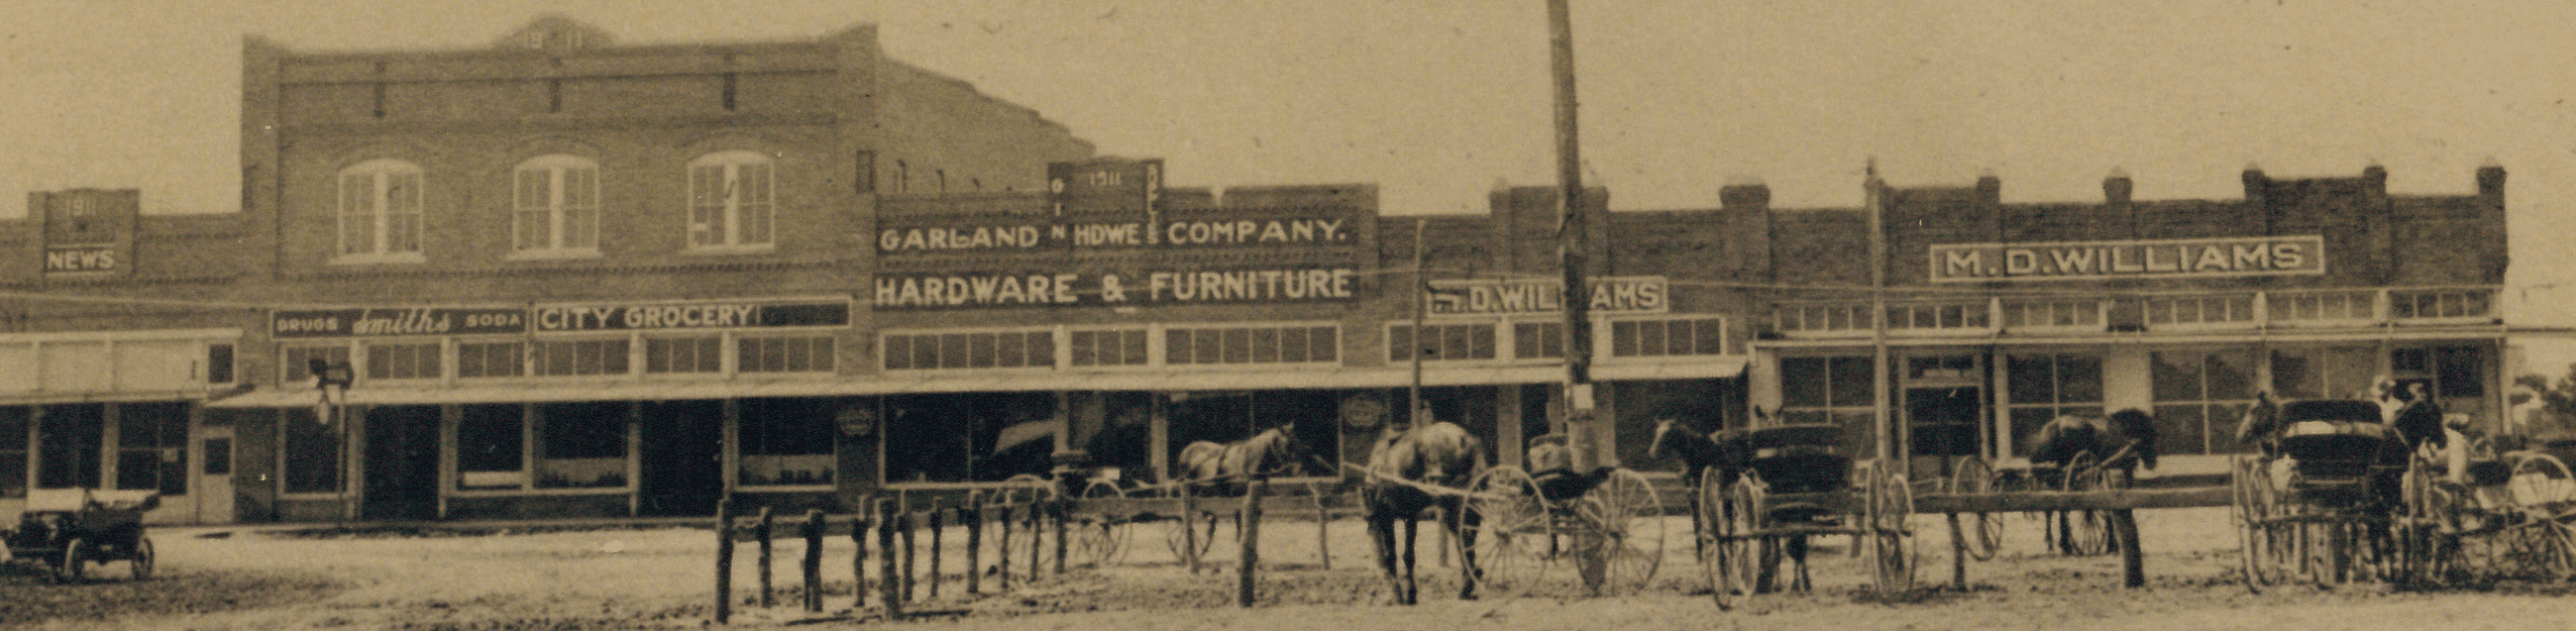 South side of square with men and buggies in foreground.